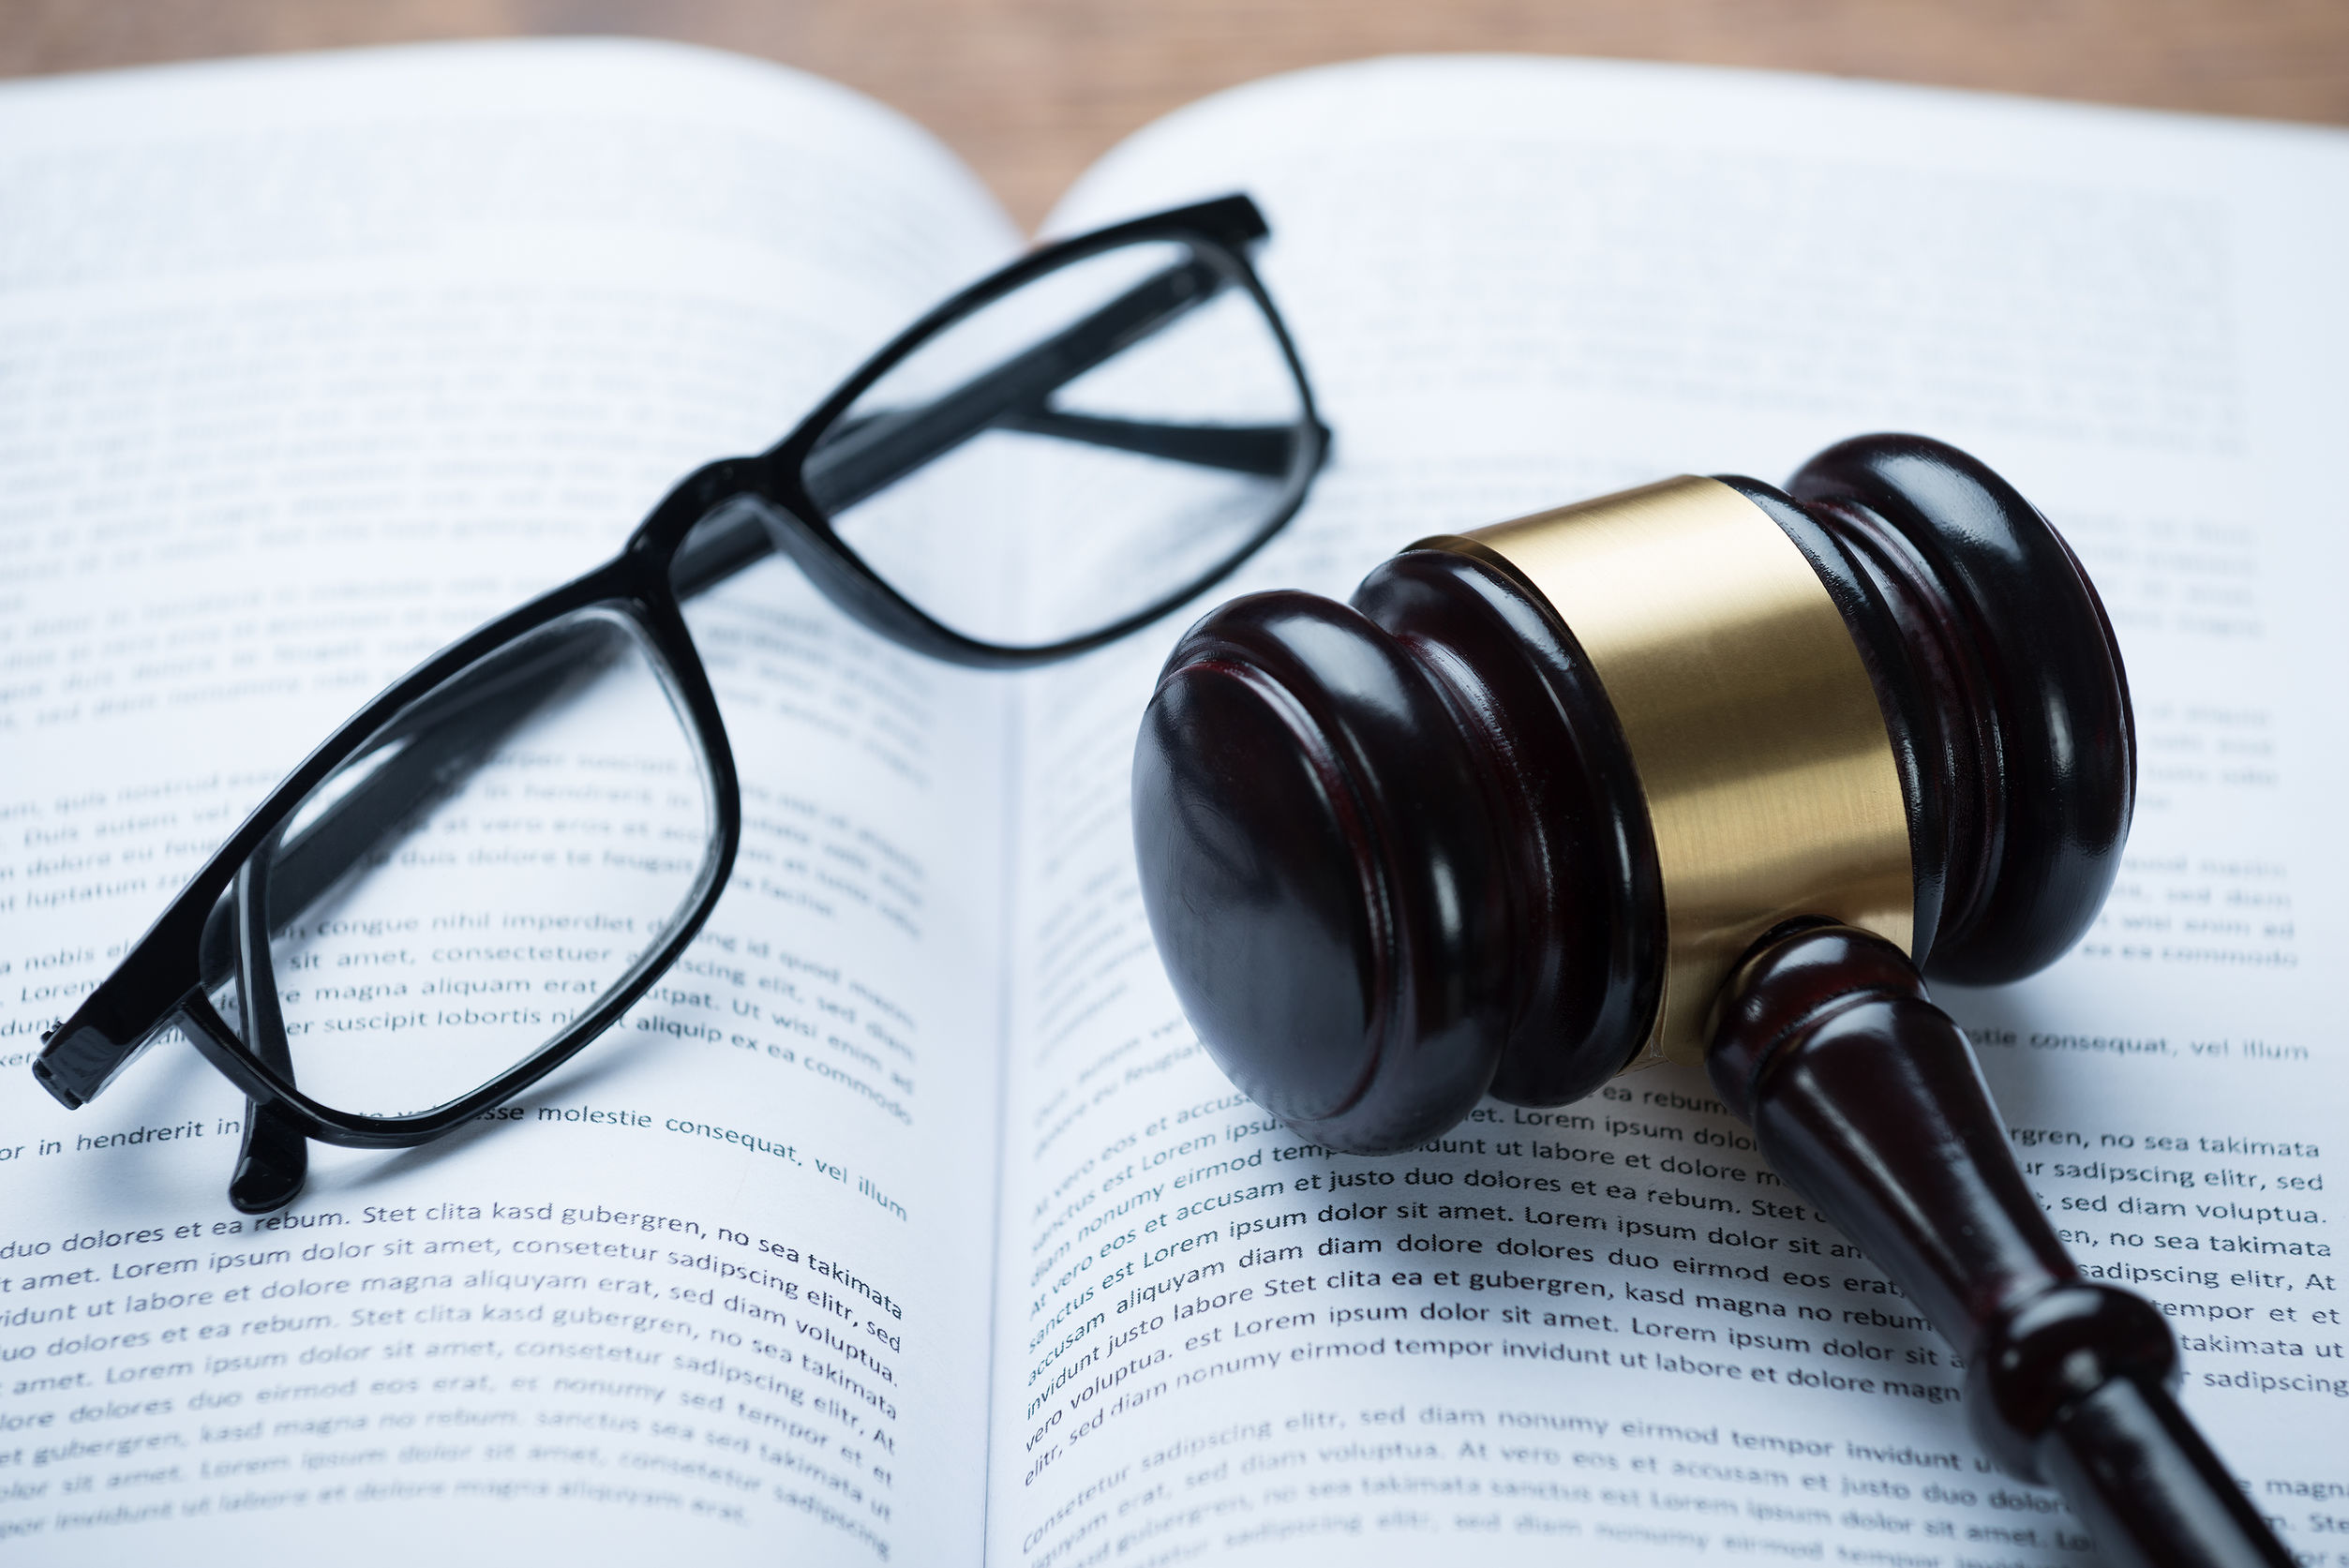 High angle view of mallet and eyeglasses on open legal book in courtroom